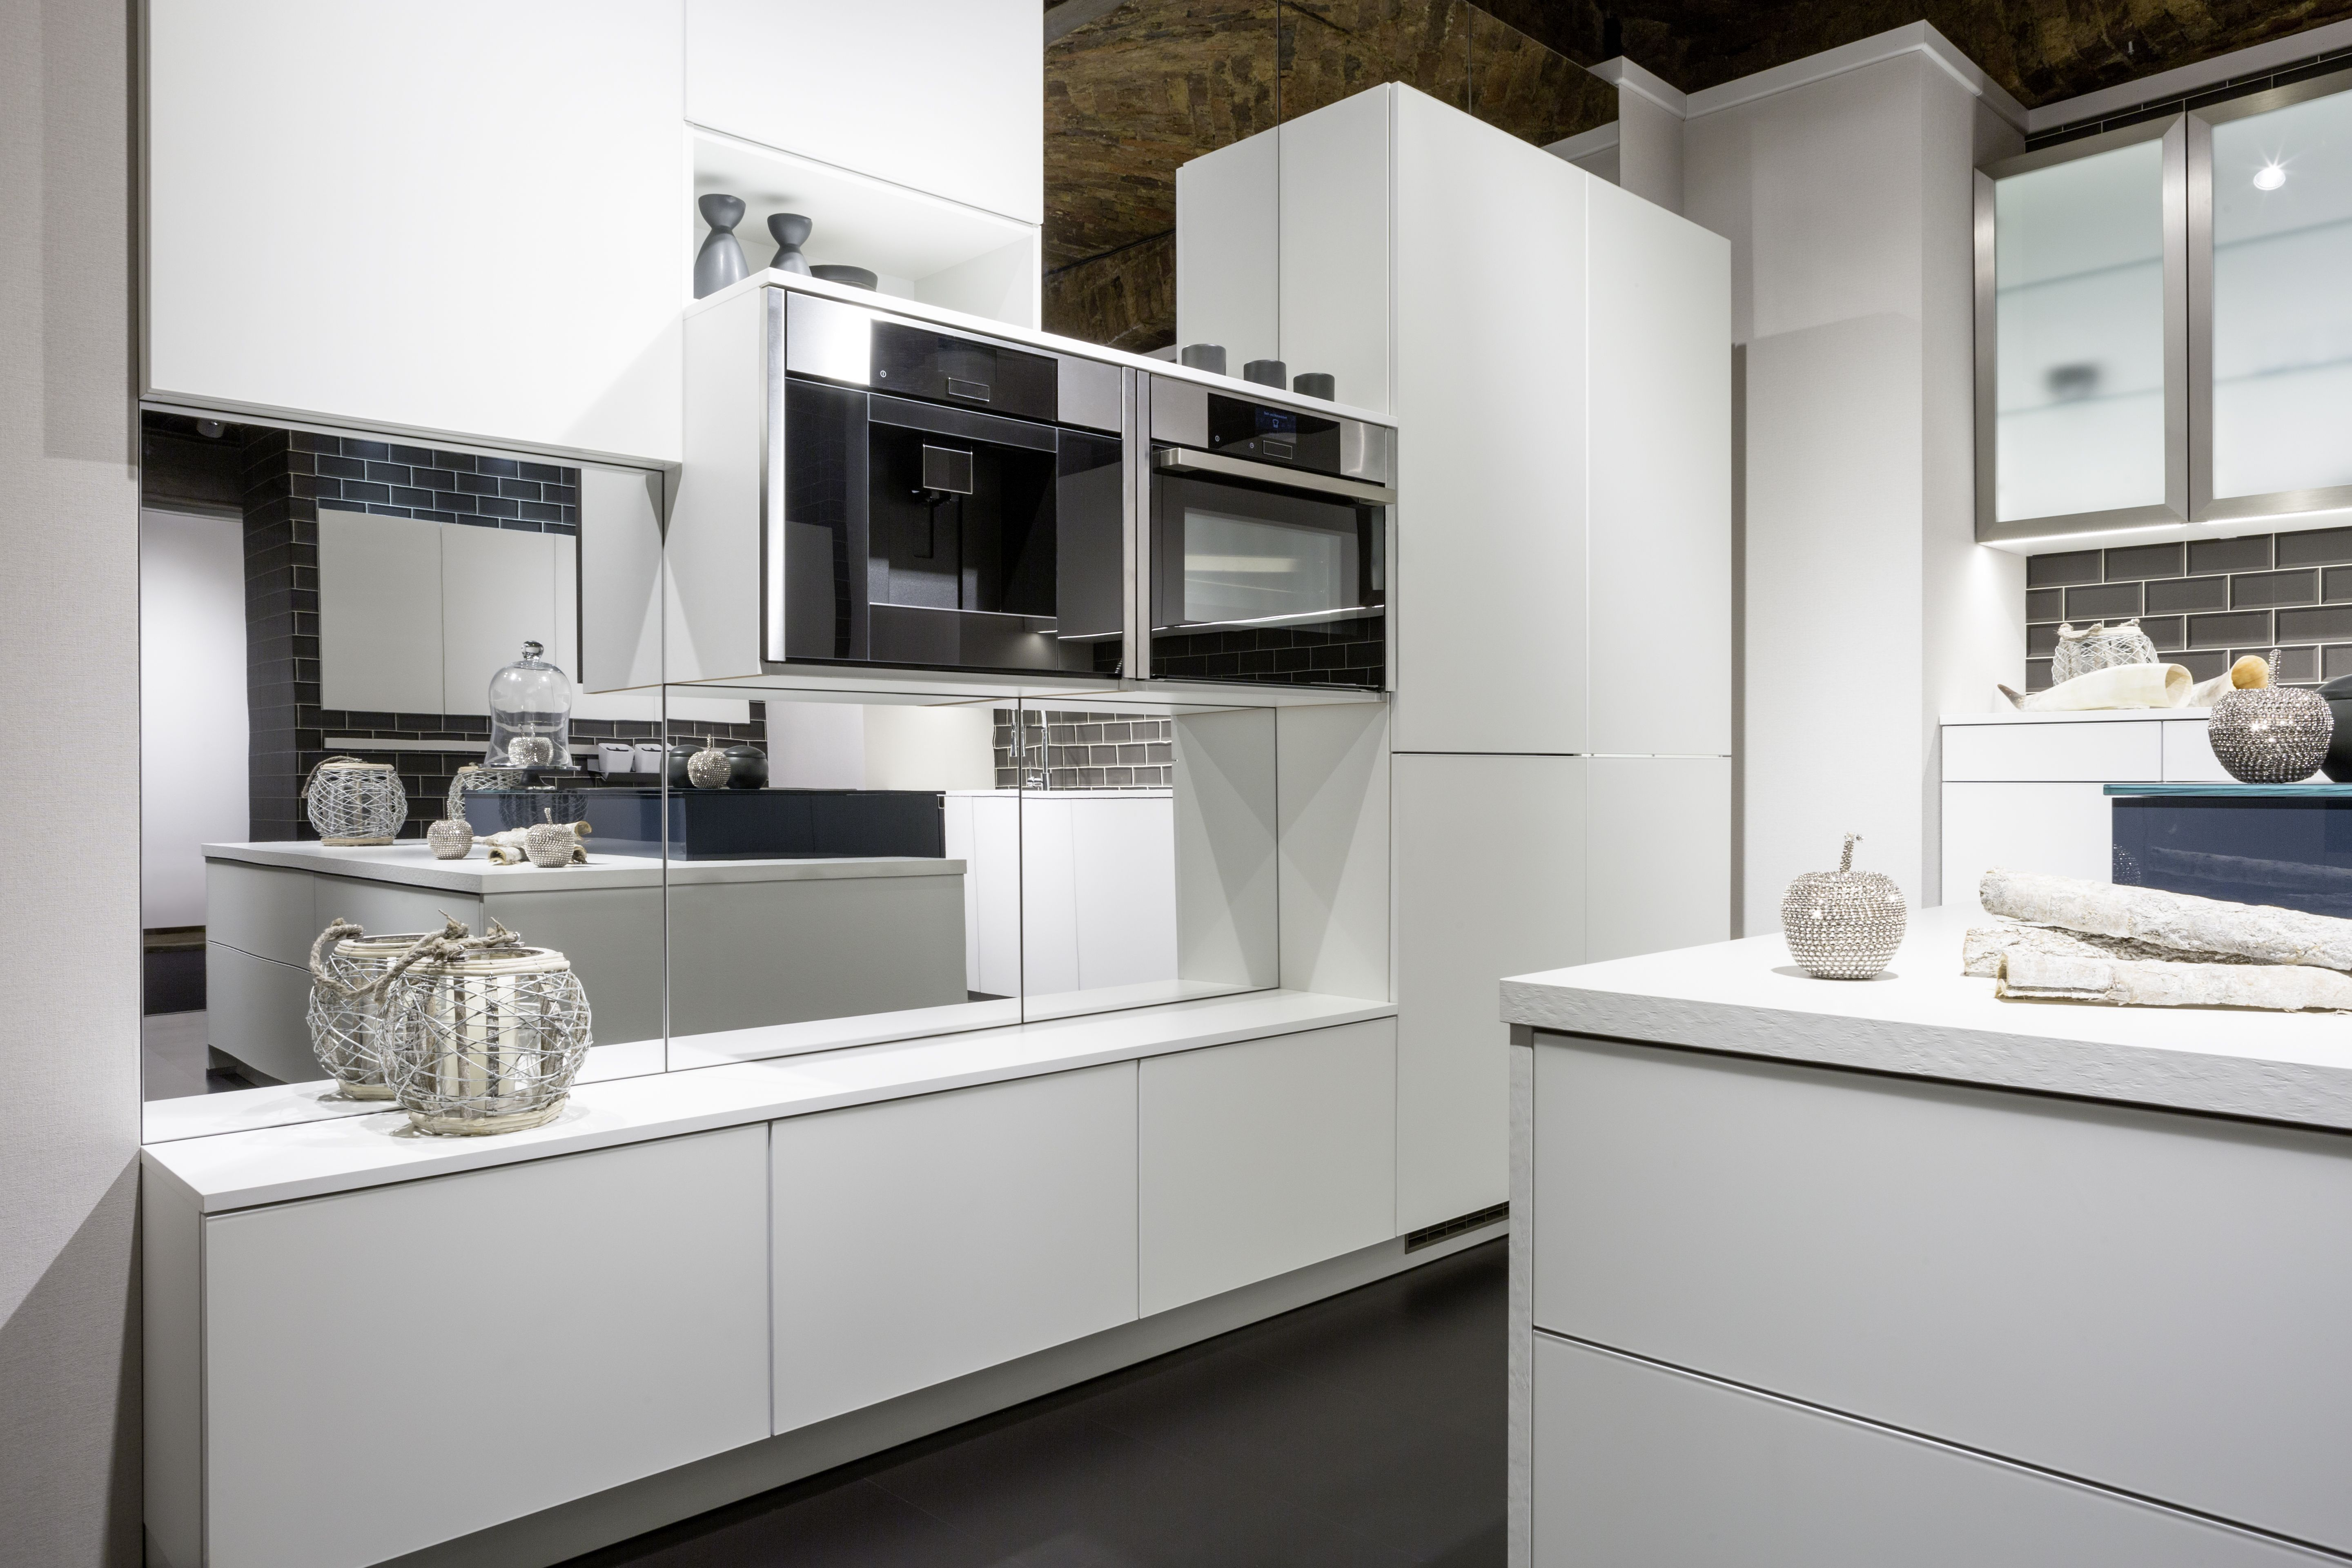 A White Out Is Always A Good Idea Check Out This Amazing Kitchen And Find The Look Here Cool Kitchens Kitchen Kitchen Design